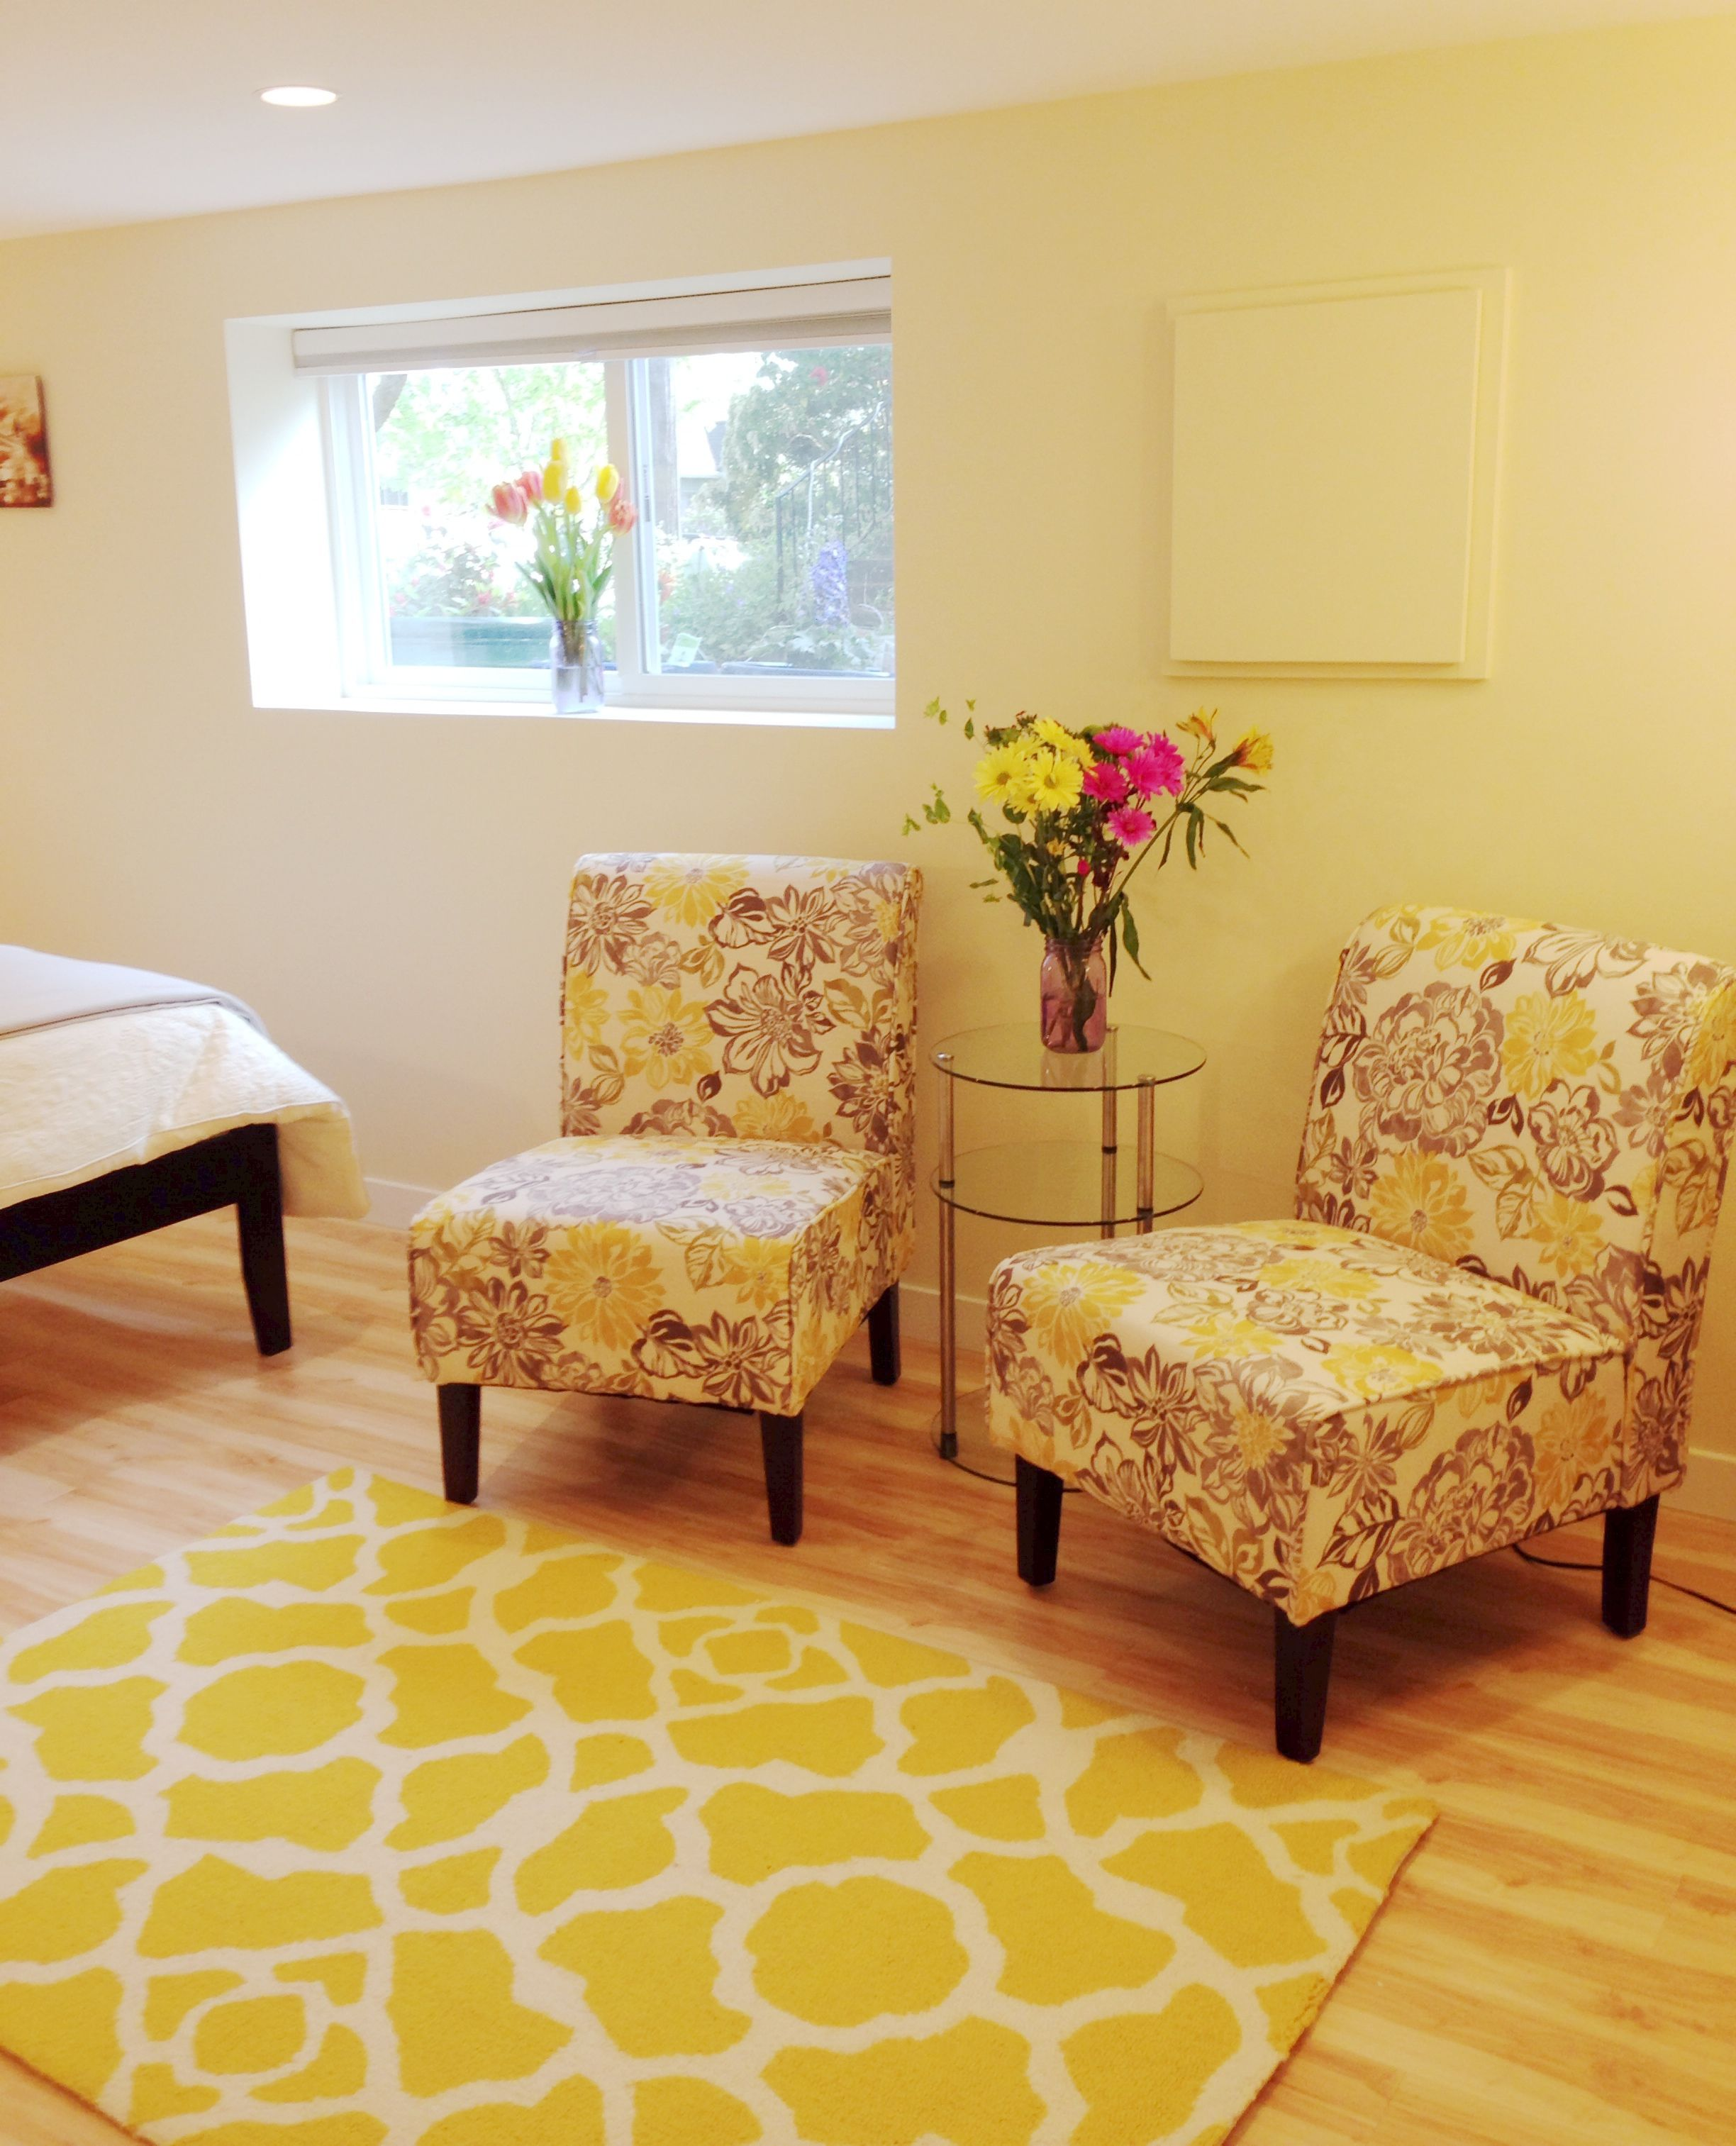 Green Lake Park Large bedroom, One bedroom, Home decor